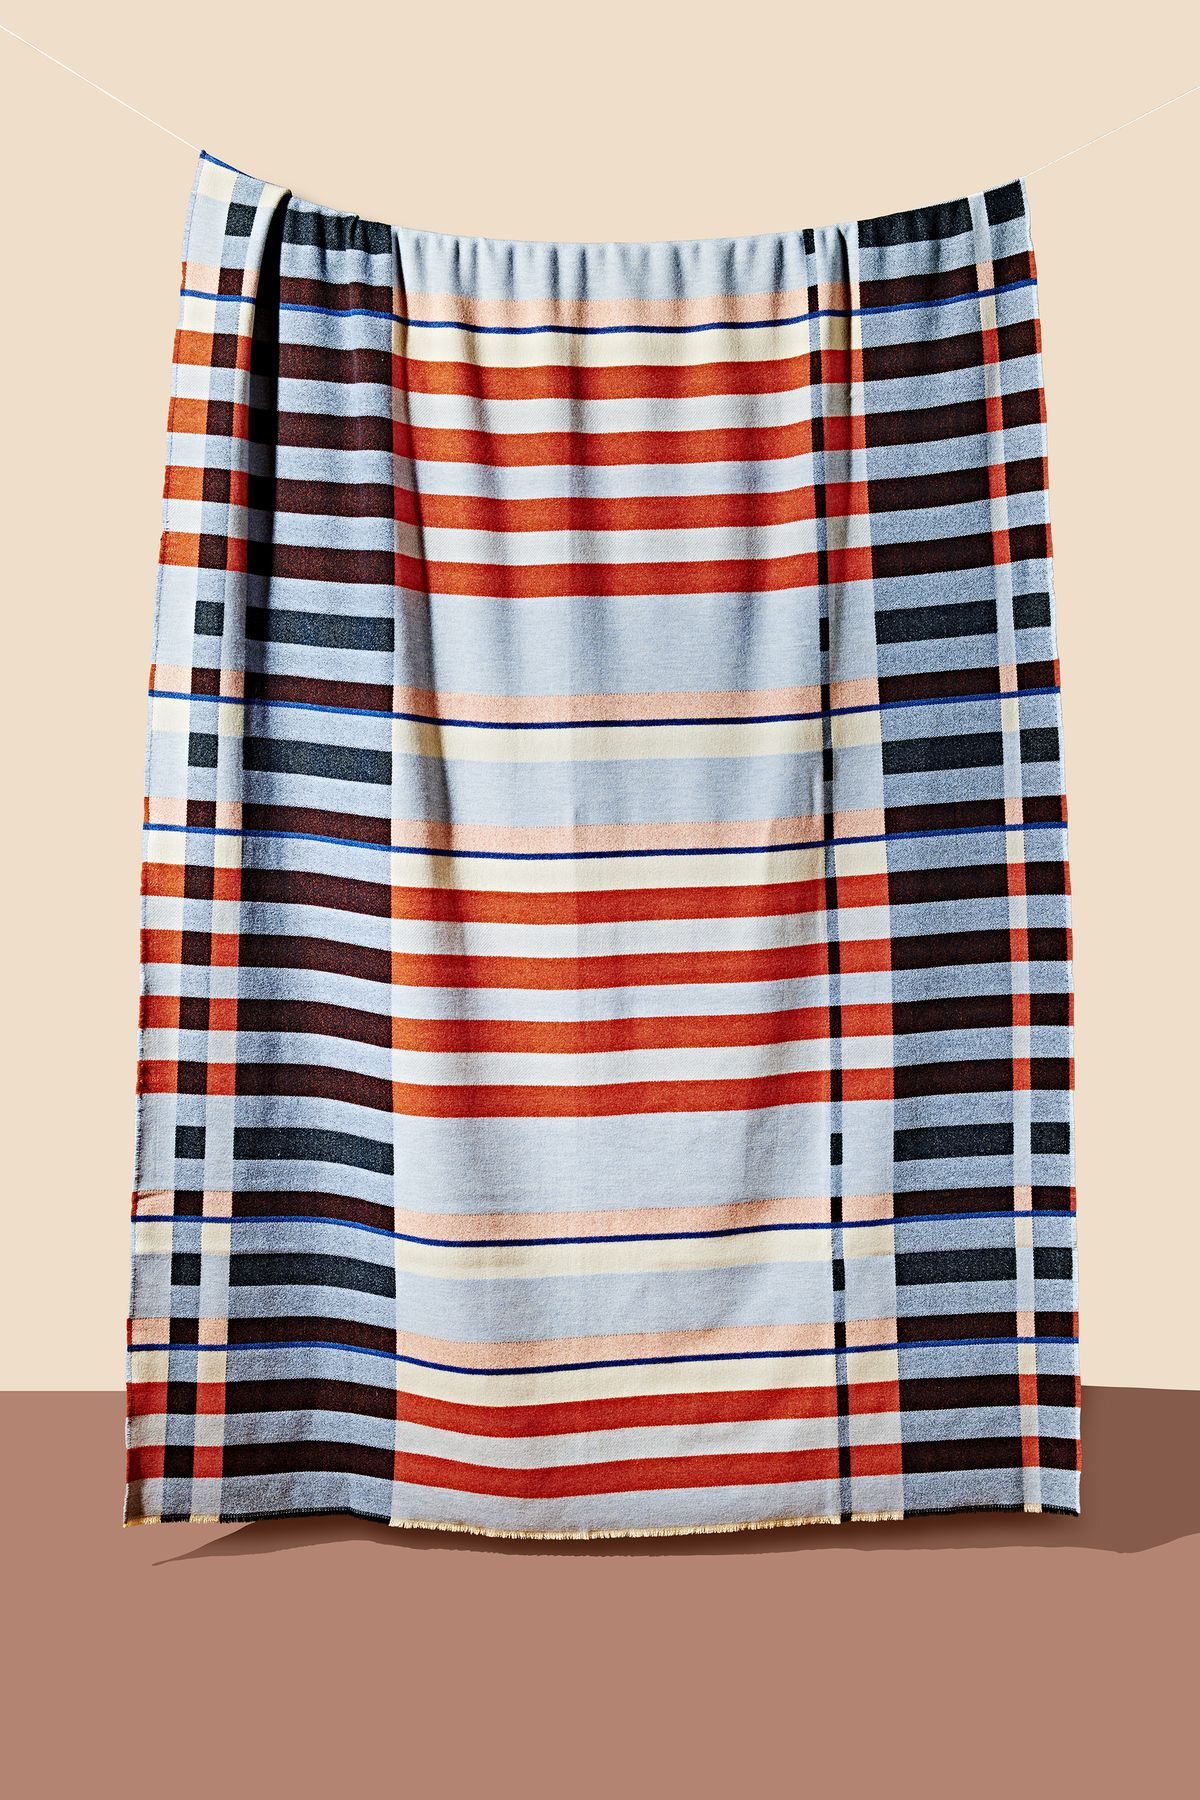 A blanket with intersecting colorful stripes which is similar to a dorm blanket design by Bauhaus weaver Gunta Stolzl. The blanket is part of the Curbed Holiday Gift Guide 2019.